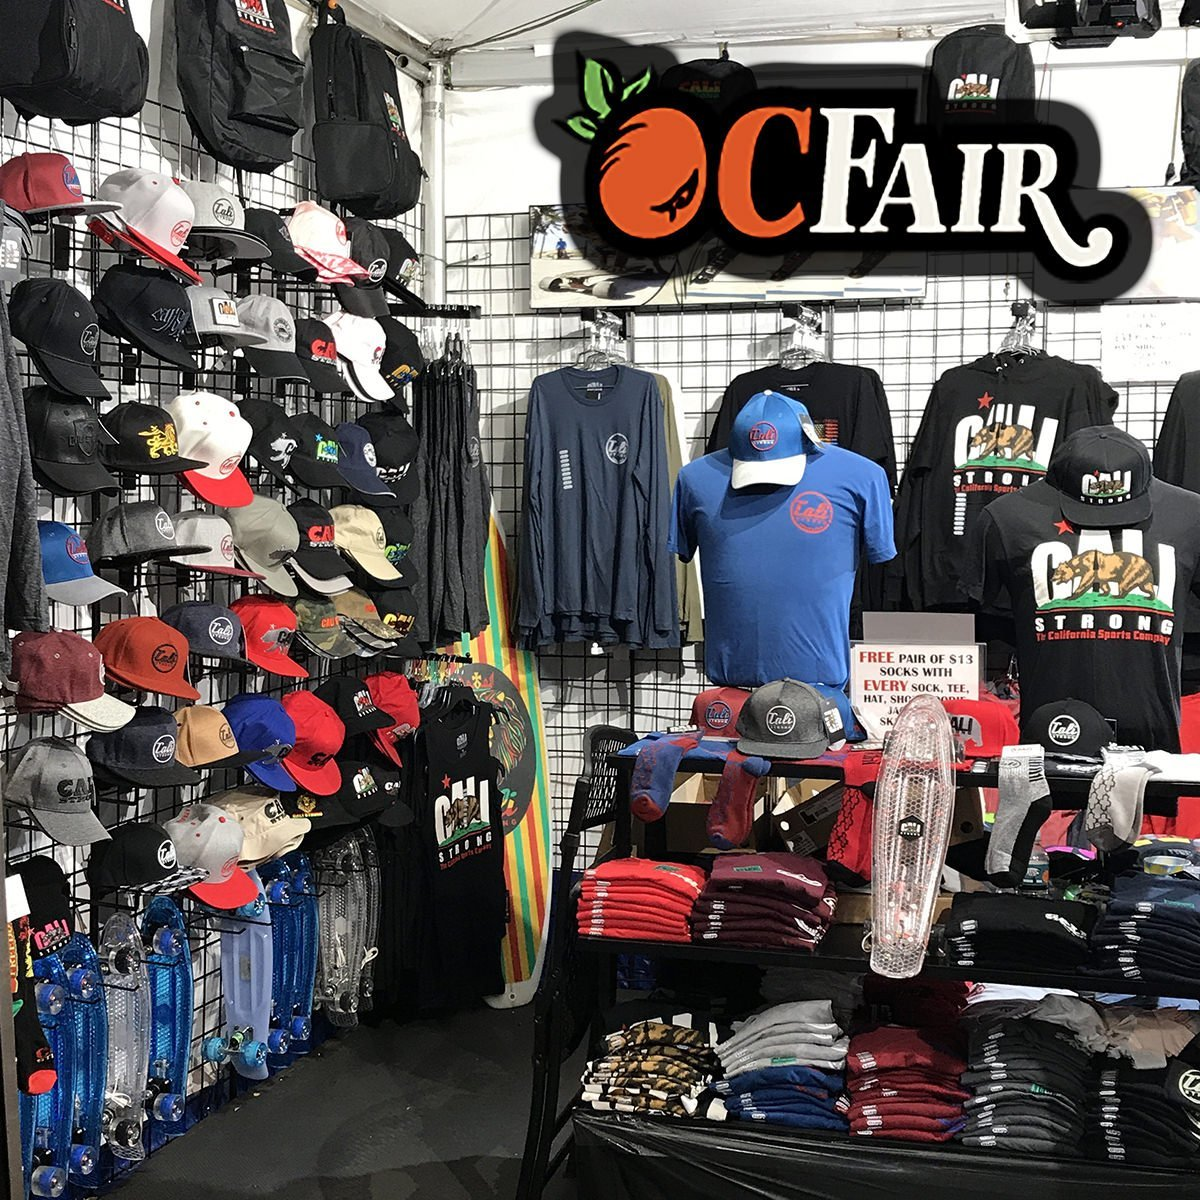 FREE Socks with any CALI Strong Hat, T-shirt, Shoe, Hoodie, Skateboard or Jacket purchased at the OC Fair! Find us on OC Lane Booth #15 in Crafter's Village. Visit the fair for Fan VIP Discounts & Special Fair Only Exclusives!